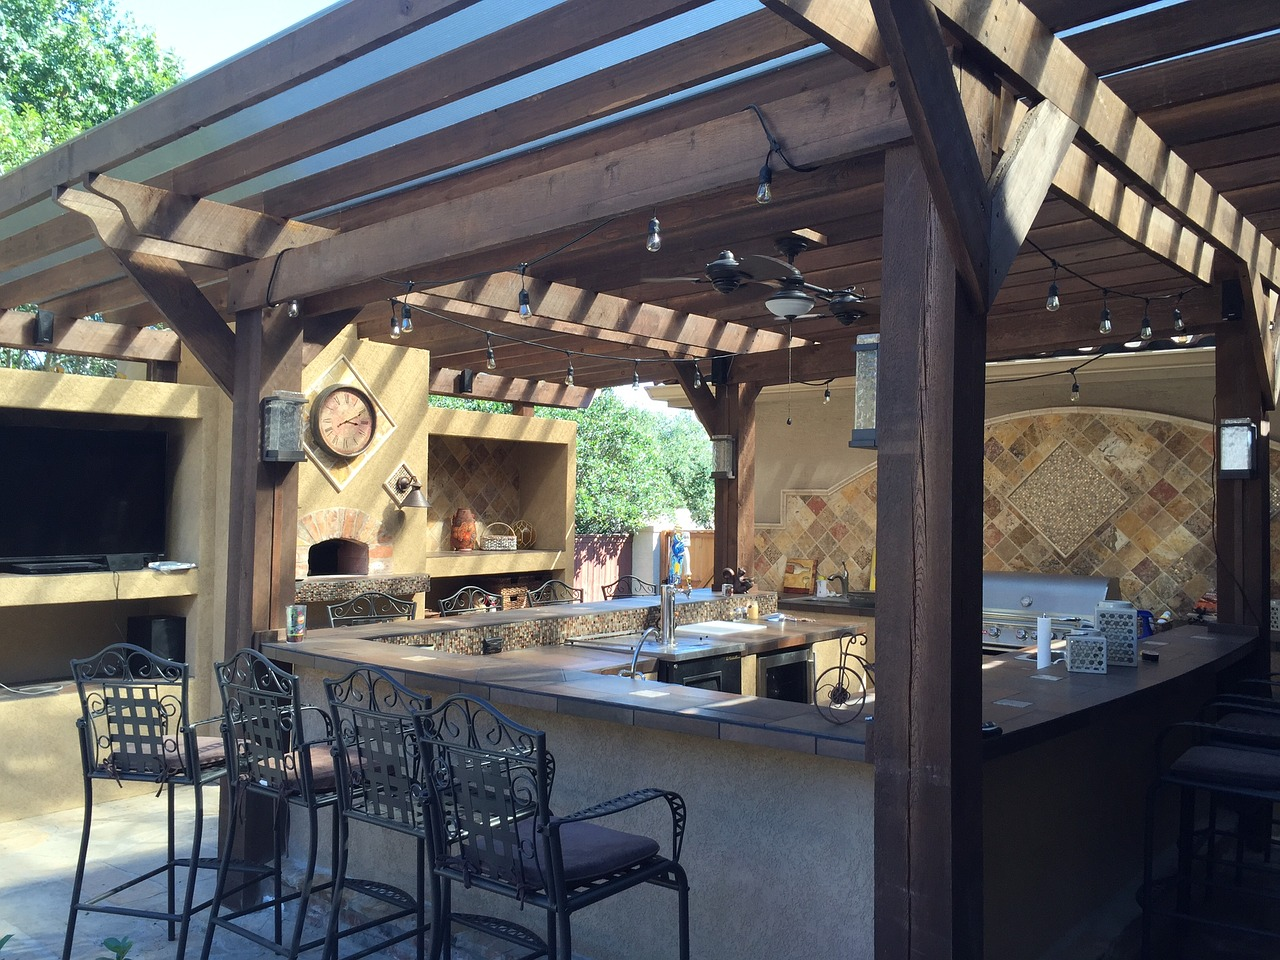 image - 5 Awesome Benefits of an Outdoor Kitchen